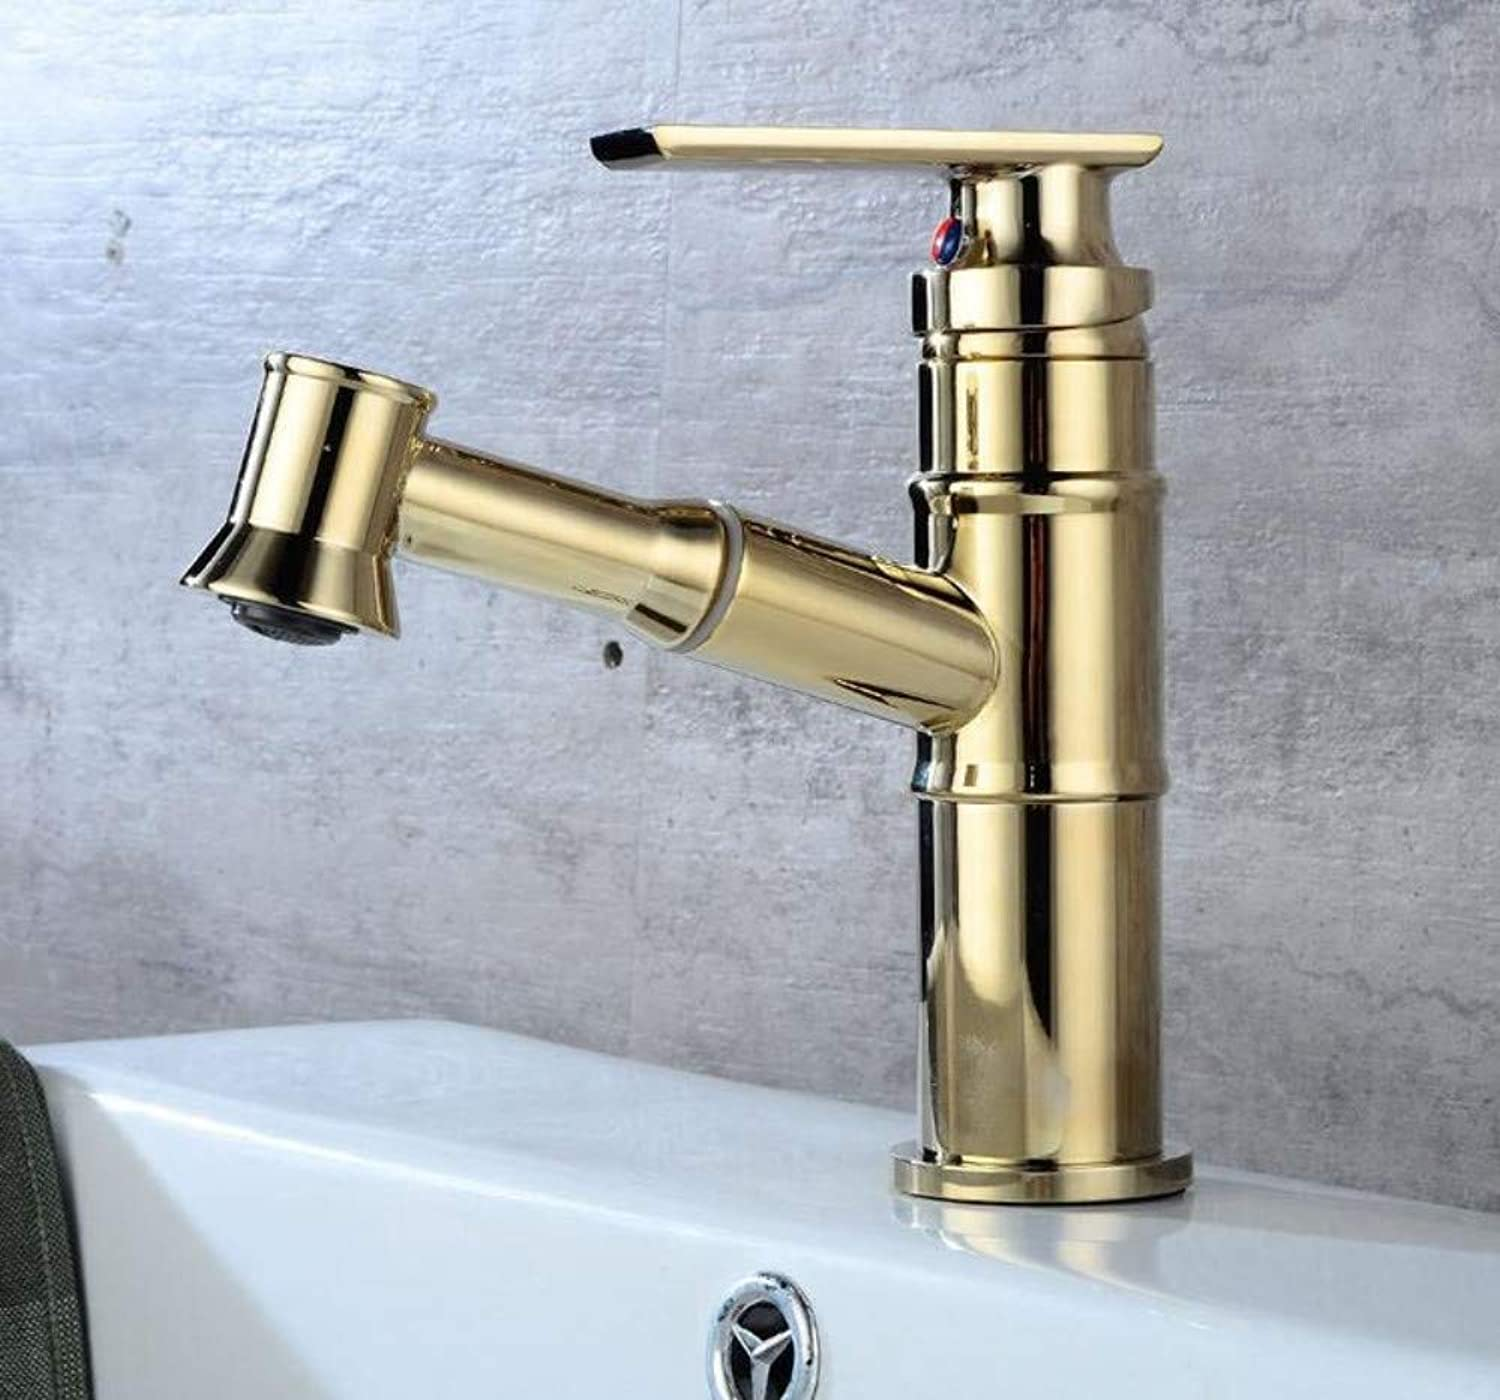 Mixer Basin Taps Pull Down Cold Water Retro Single Hole Single Handle Bathroom Sink Basin Mixer Taps Faucet